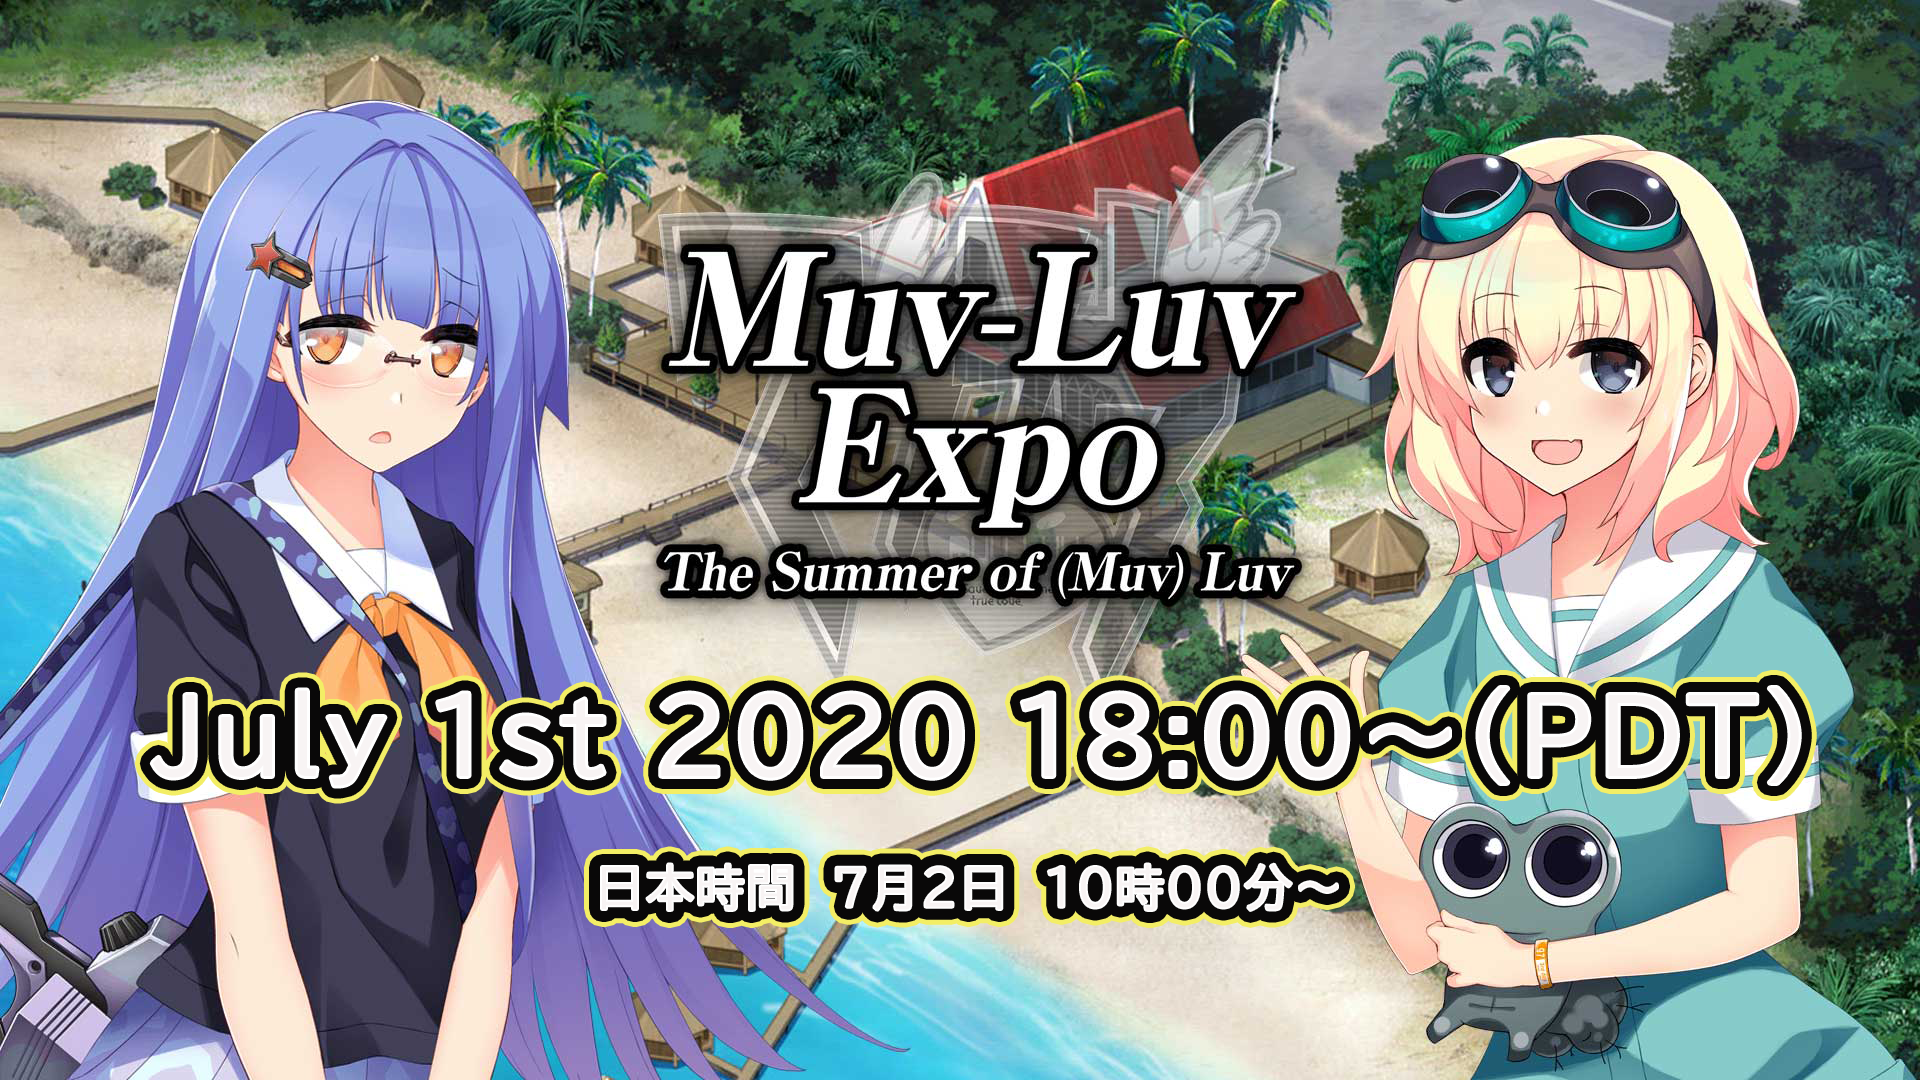 "Releases Full Schedule for Online Event ""Muv-Luv Expo: The Summer of (Muv) Luv"":  Featuring an Anime Watch Party, Mini-Concerts by Aki Misato and Minami Kuribayashi, and more!"